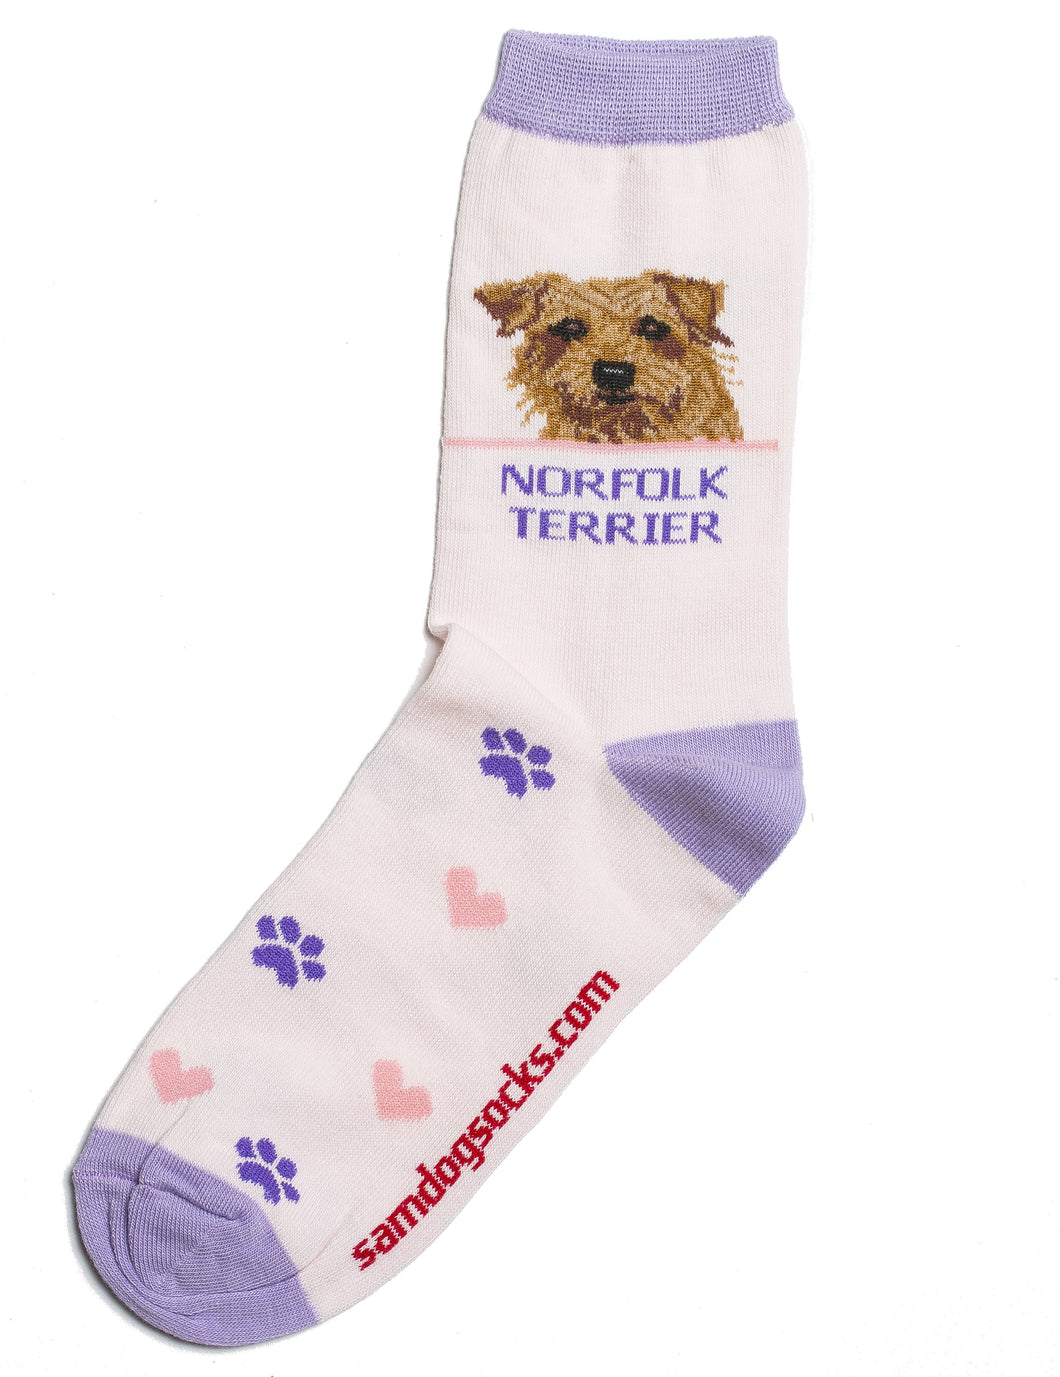 Norfolk Terrier Dog Socks - samnoveltysocks.com